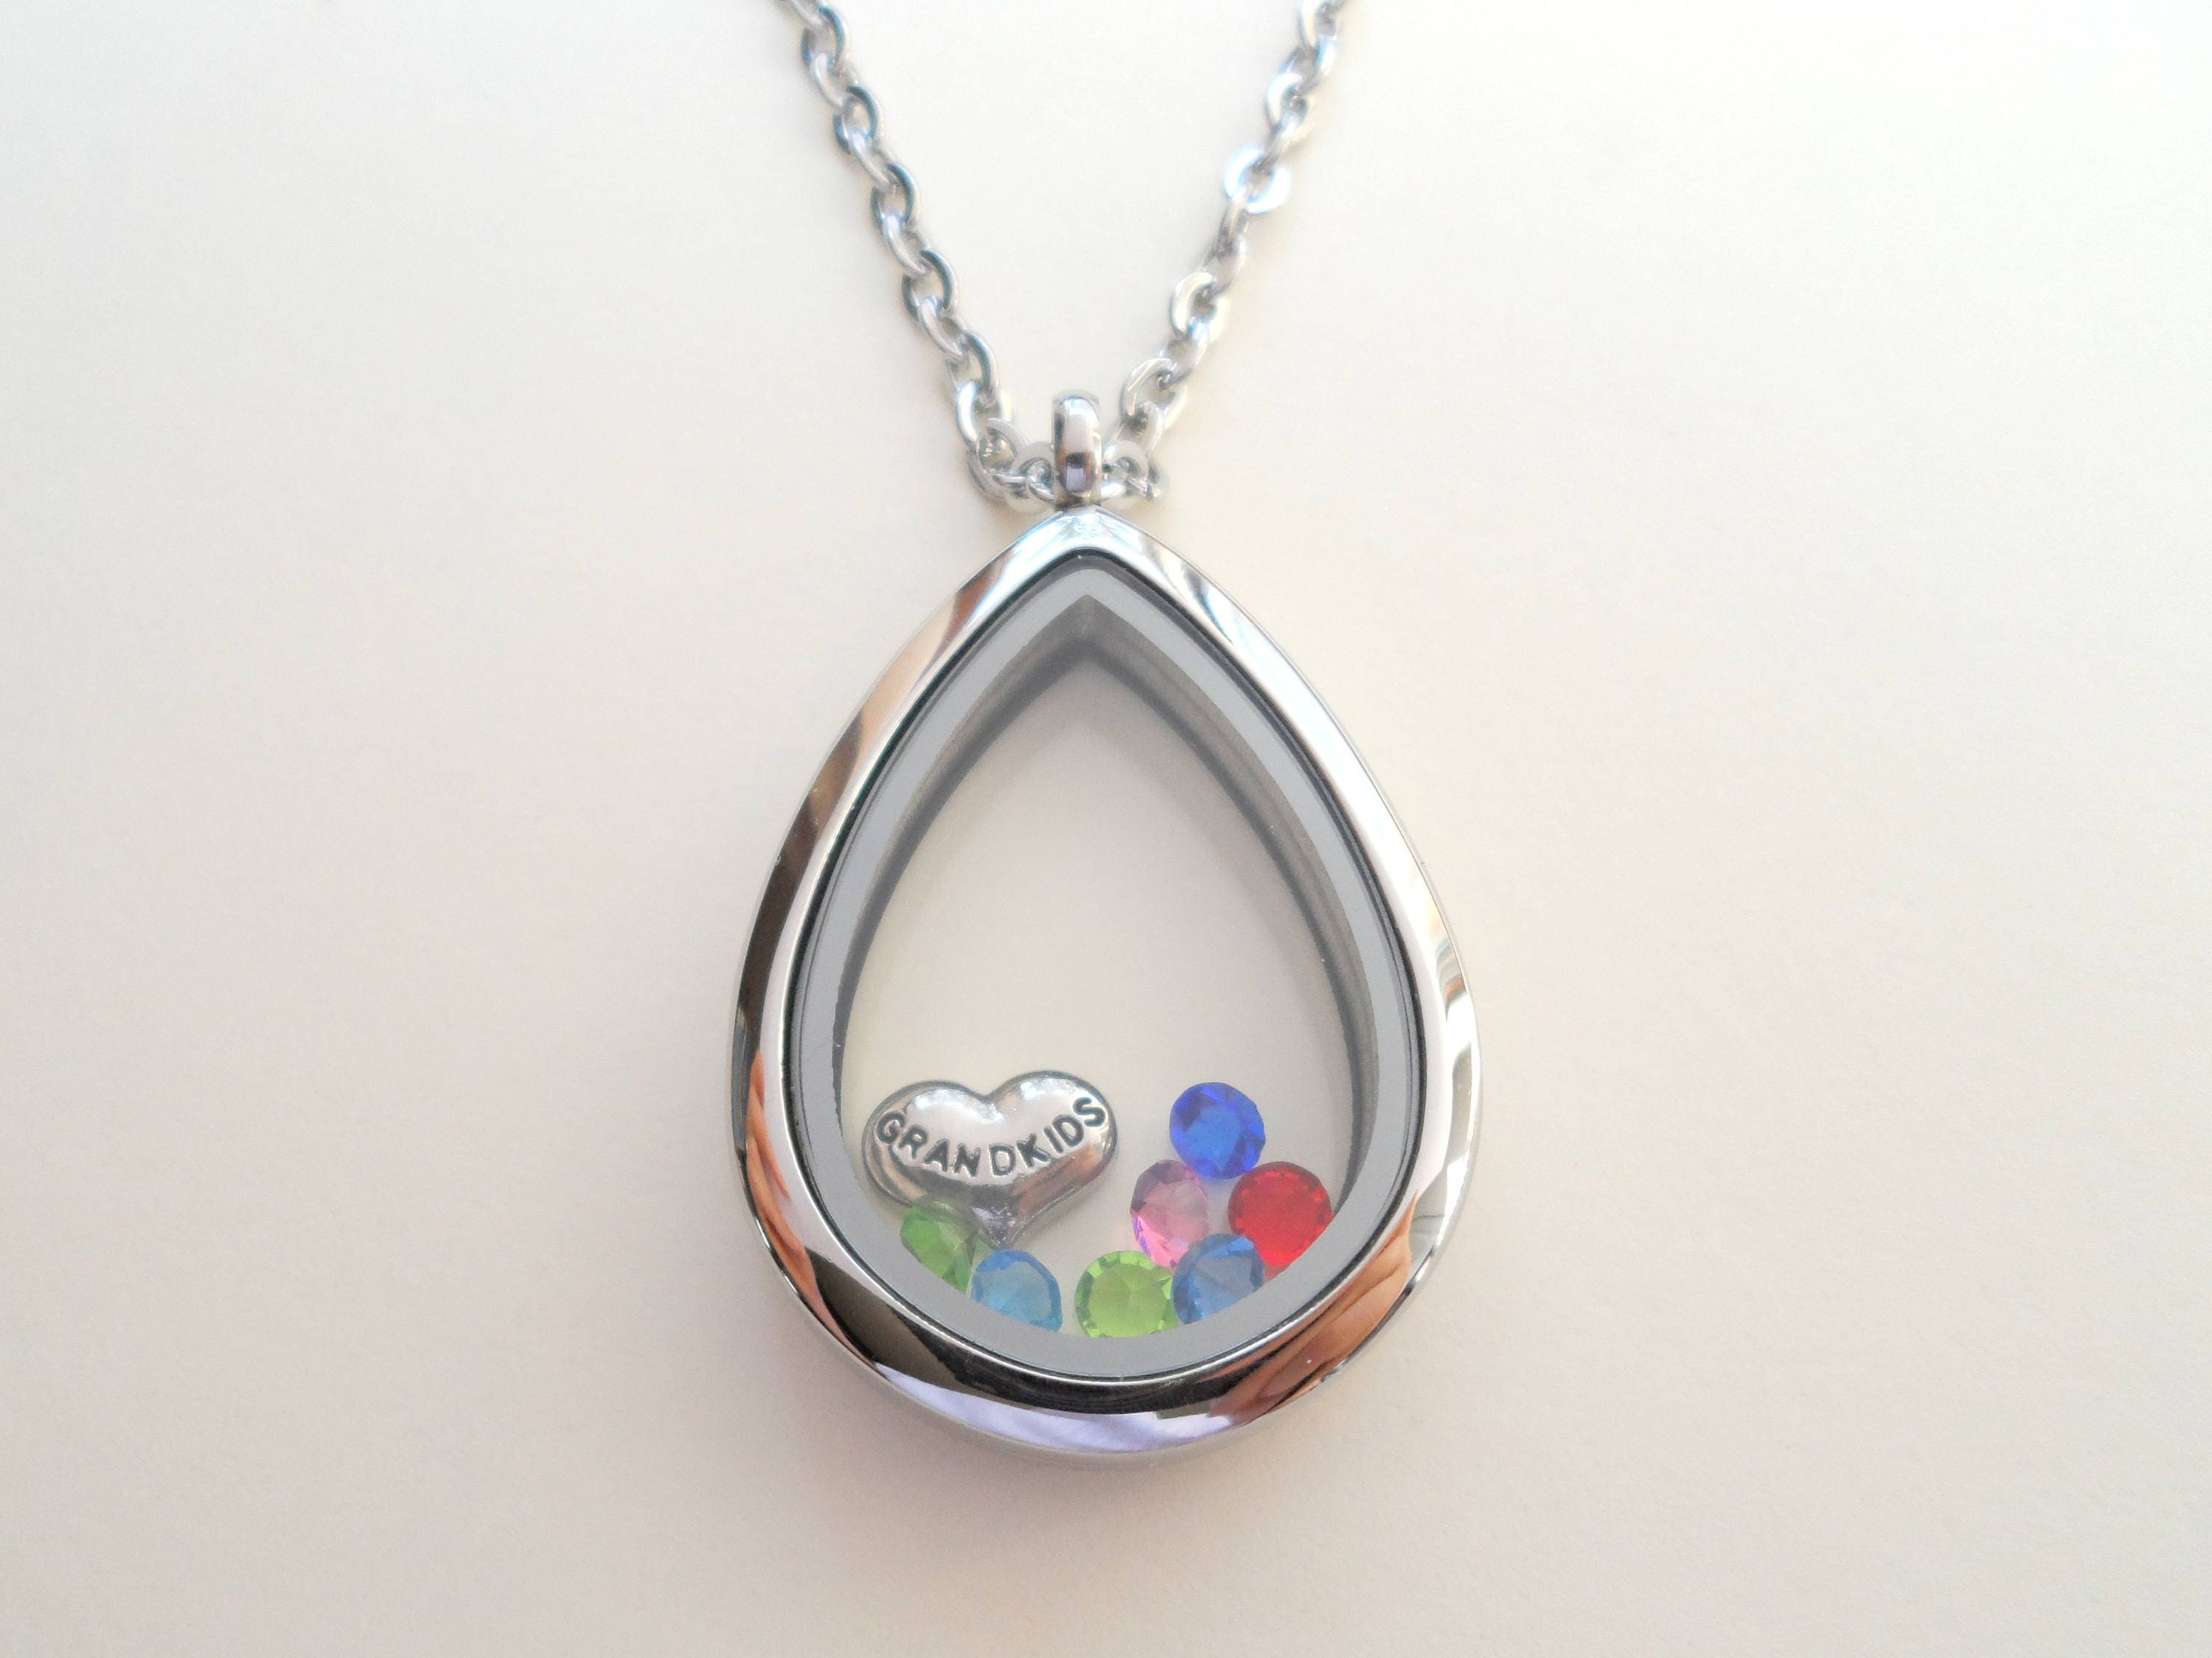 swarovski crystals these some who by else charms your brilliantly popular and loves crystal most pin shine necklace to of belong are our in locket any birthstone sparkle they then grandkid